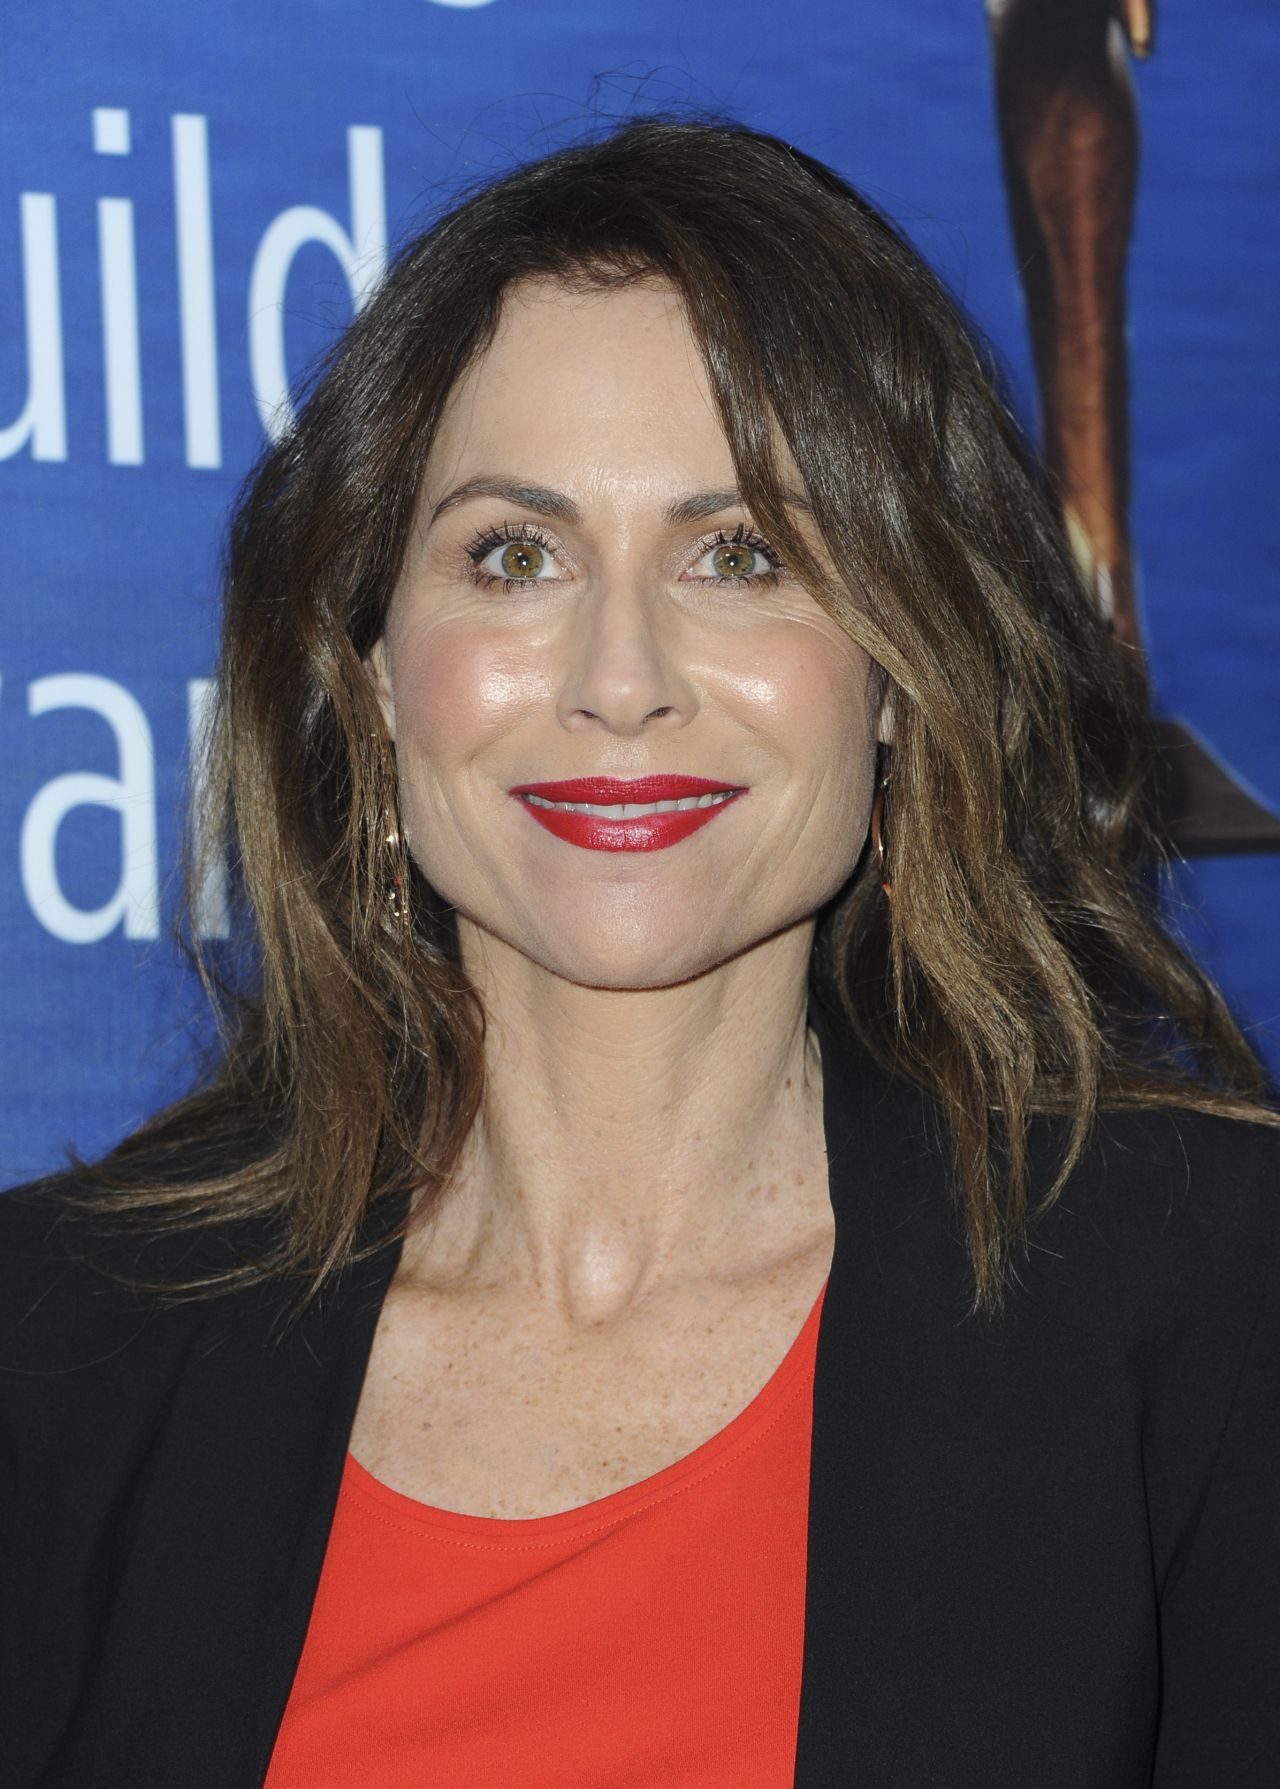 Minnie Driver Writers Guild Awards 2018 Red Carpet